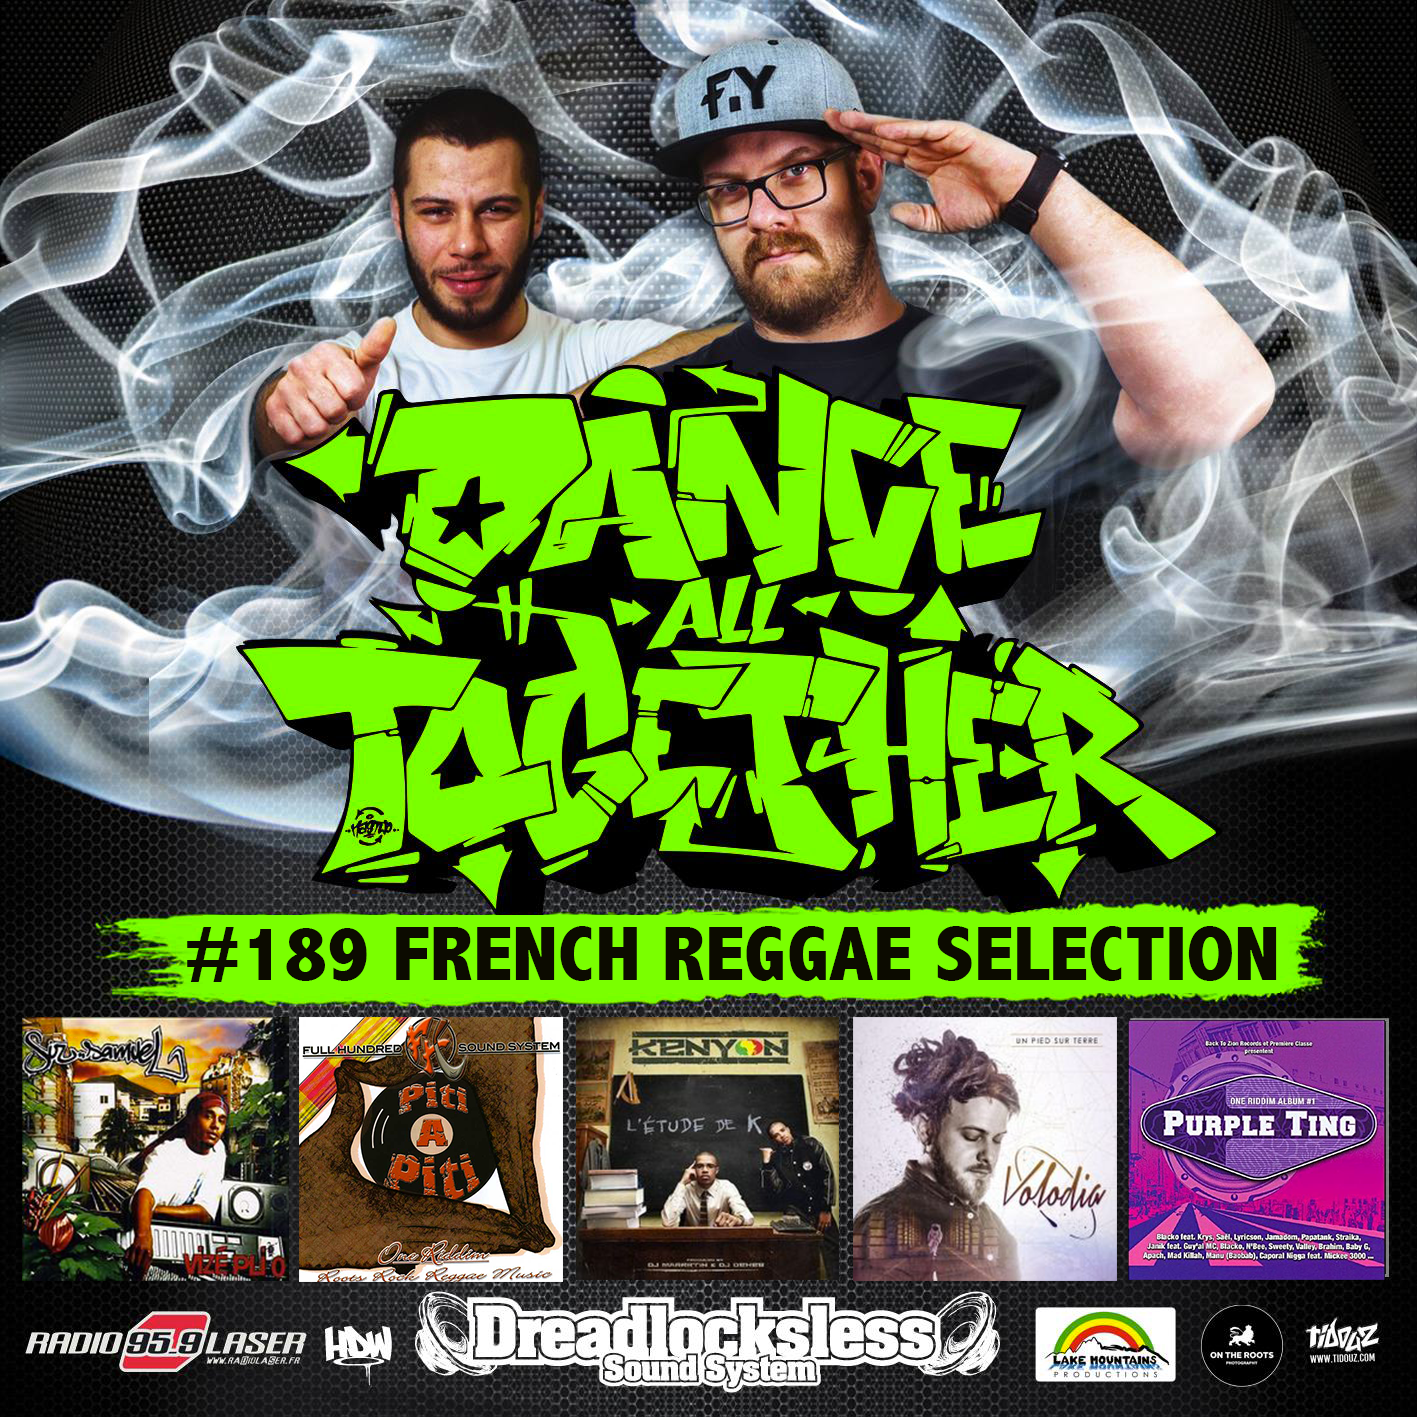 Dance All Together #189 French Reggae Selection